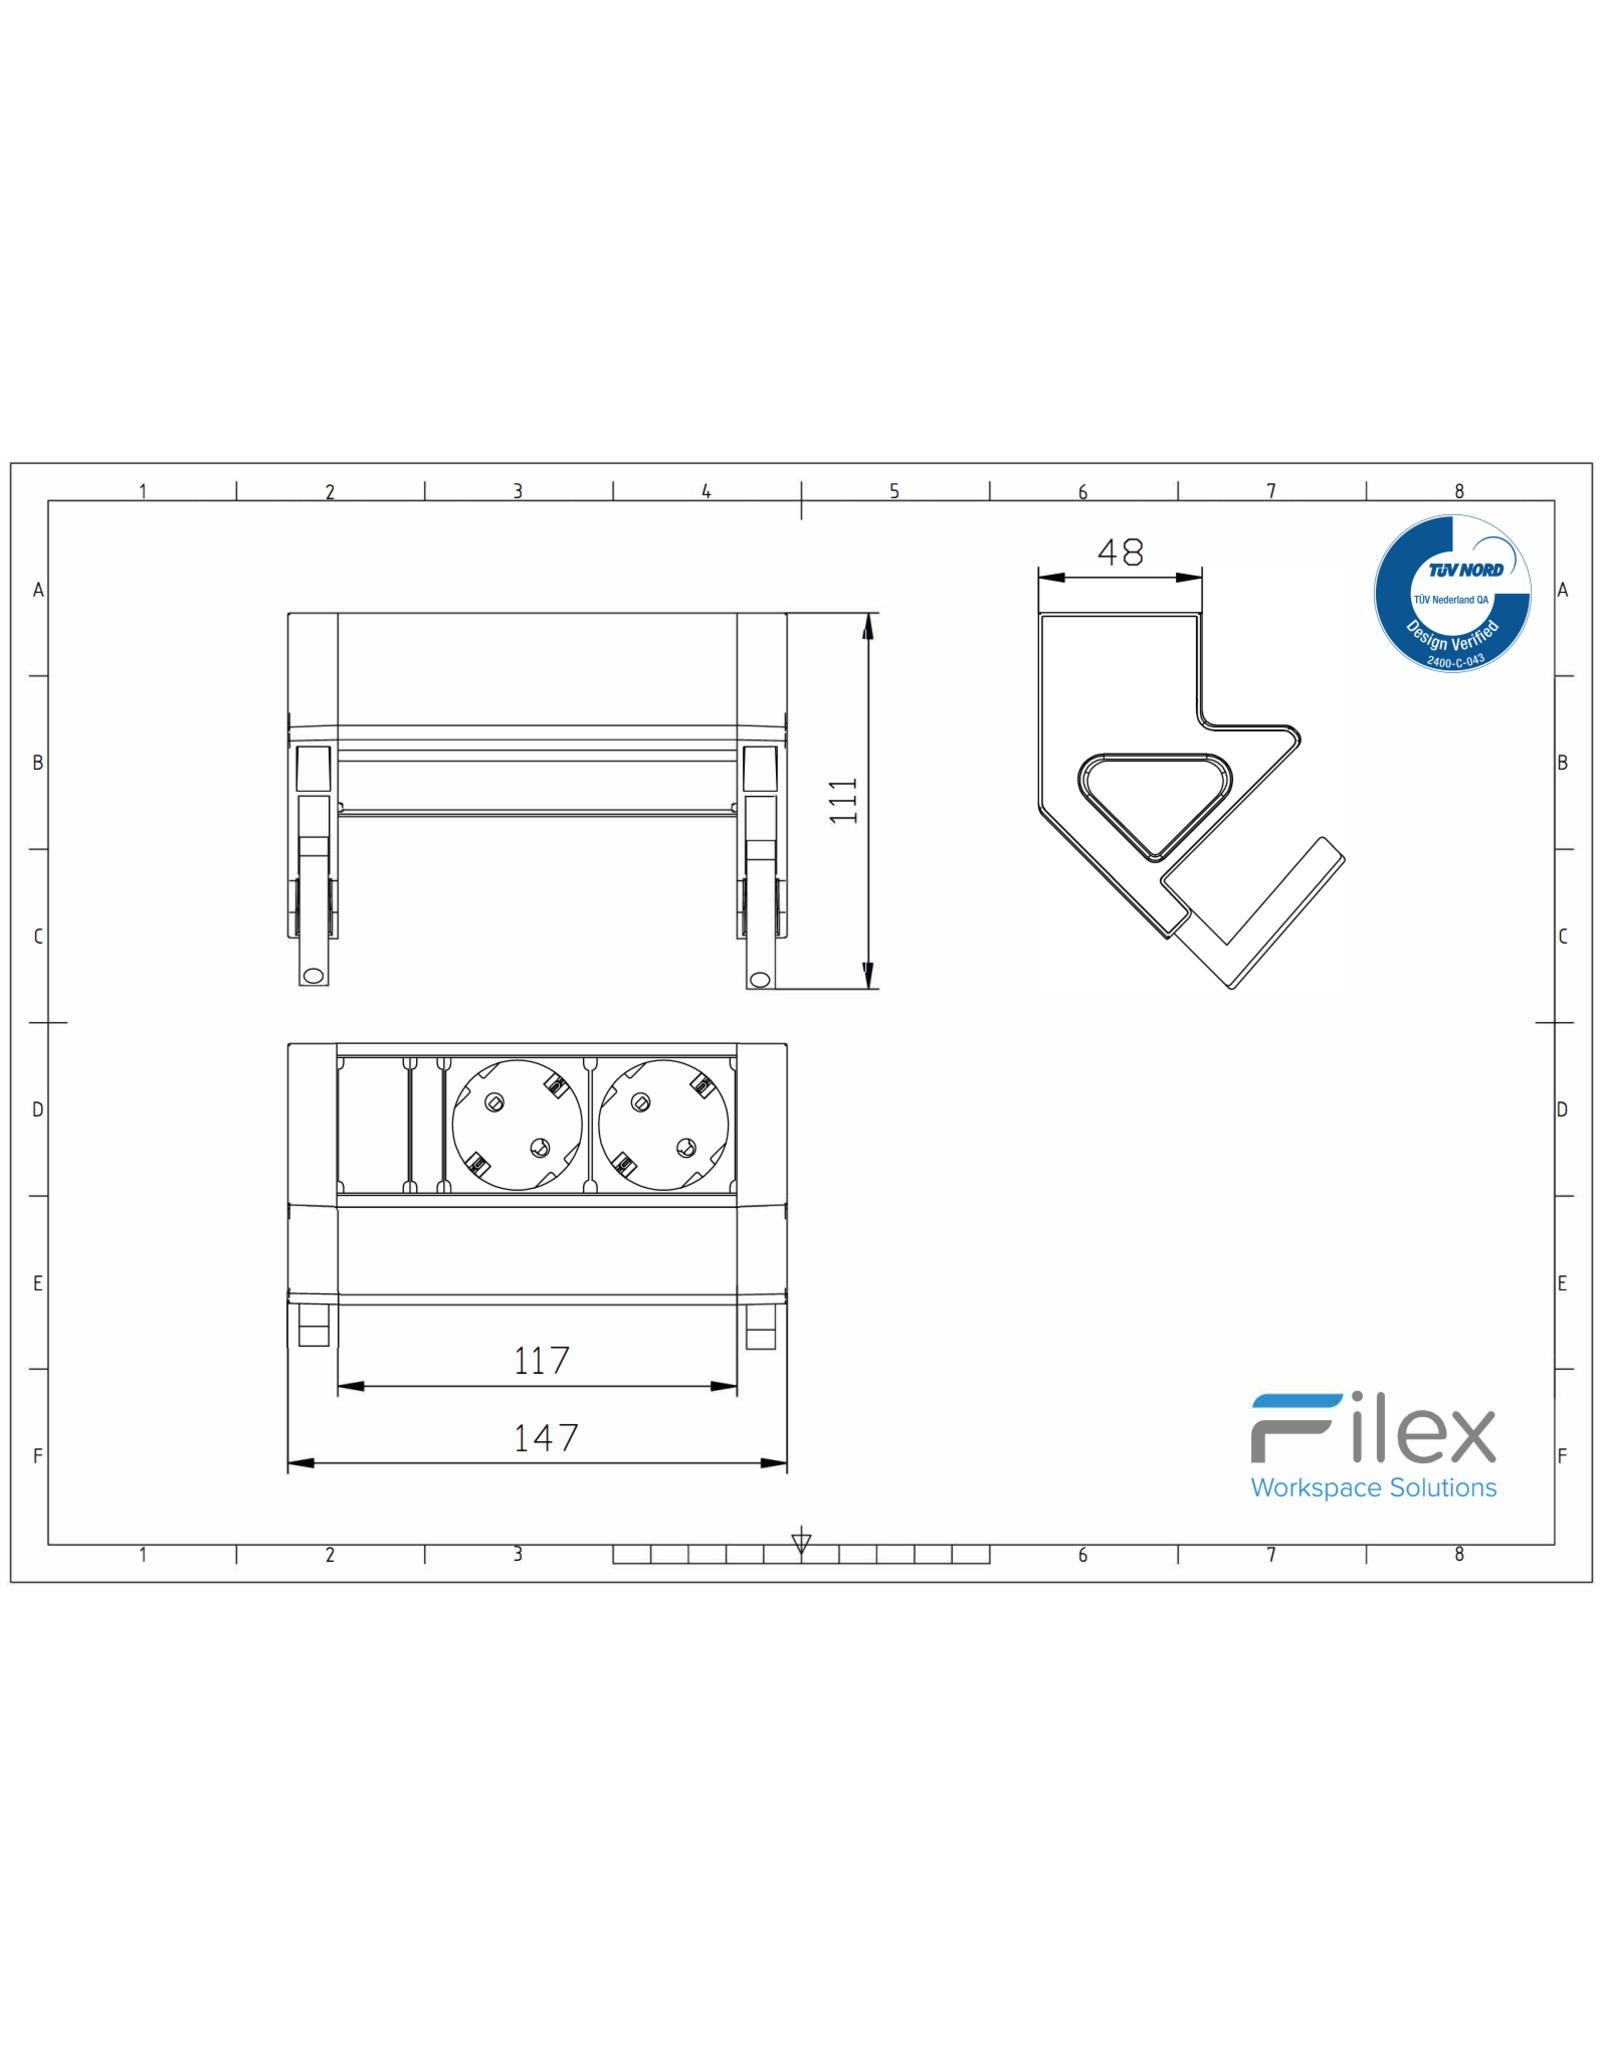 Filex Power Desk up 2.0 - 2x 230V